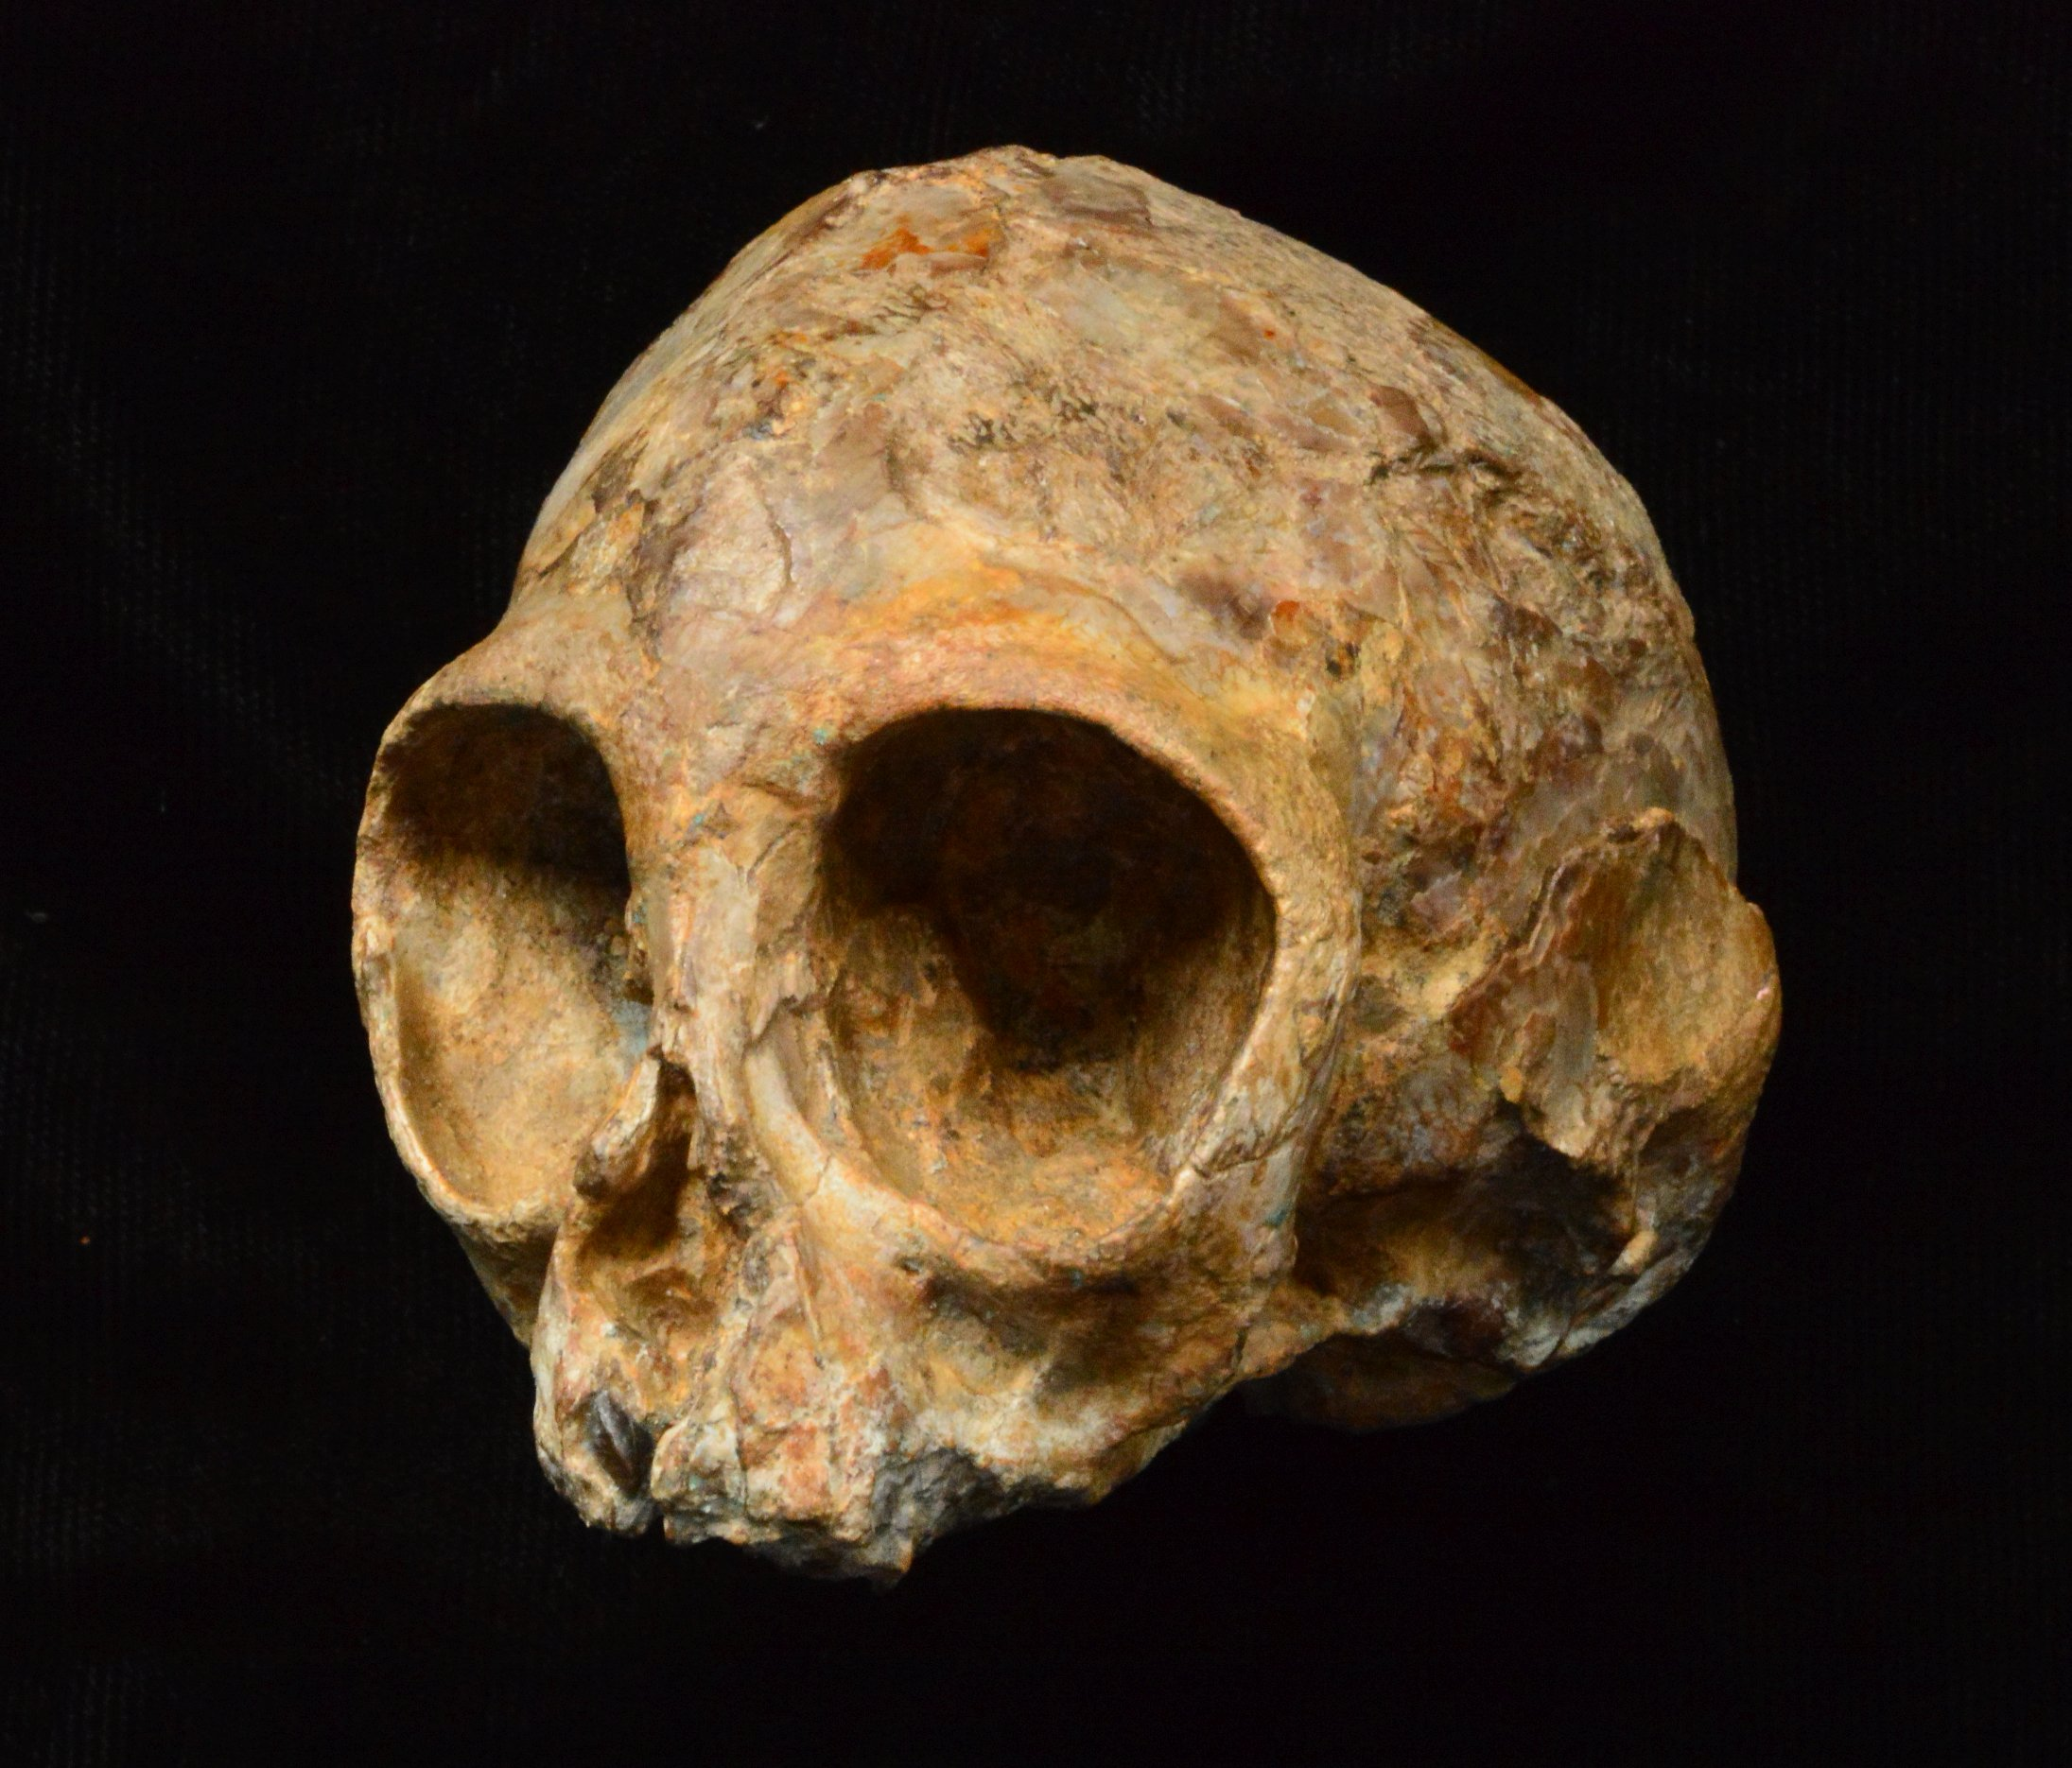 Discovery Of Ancient Skull Sheds Light On Ape Ancestry